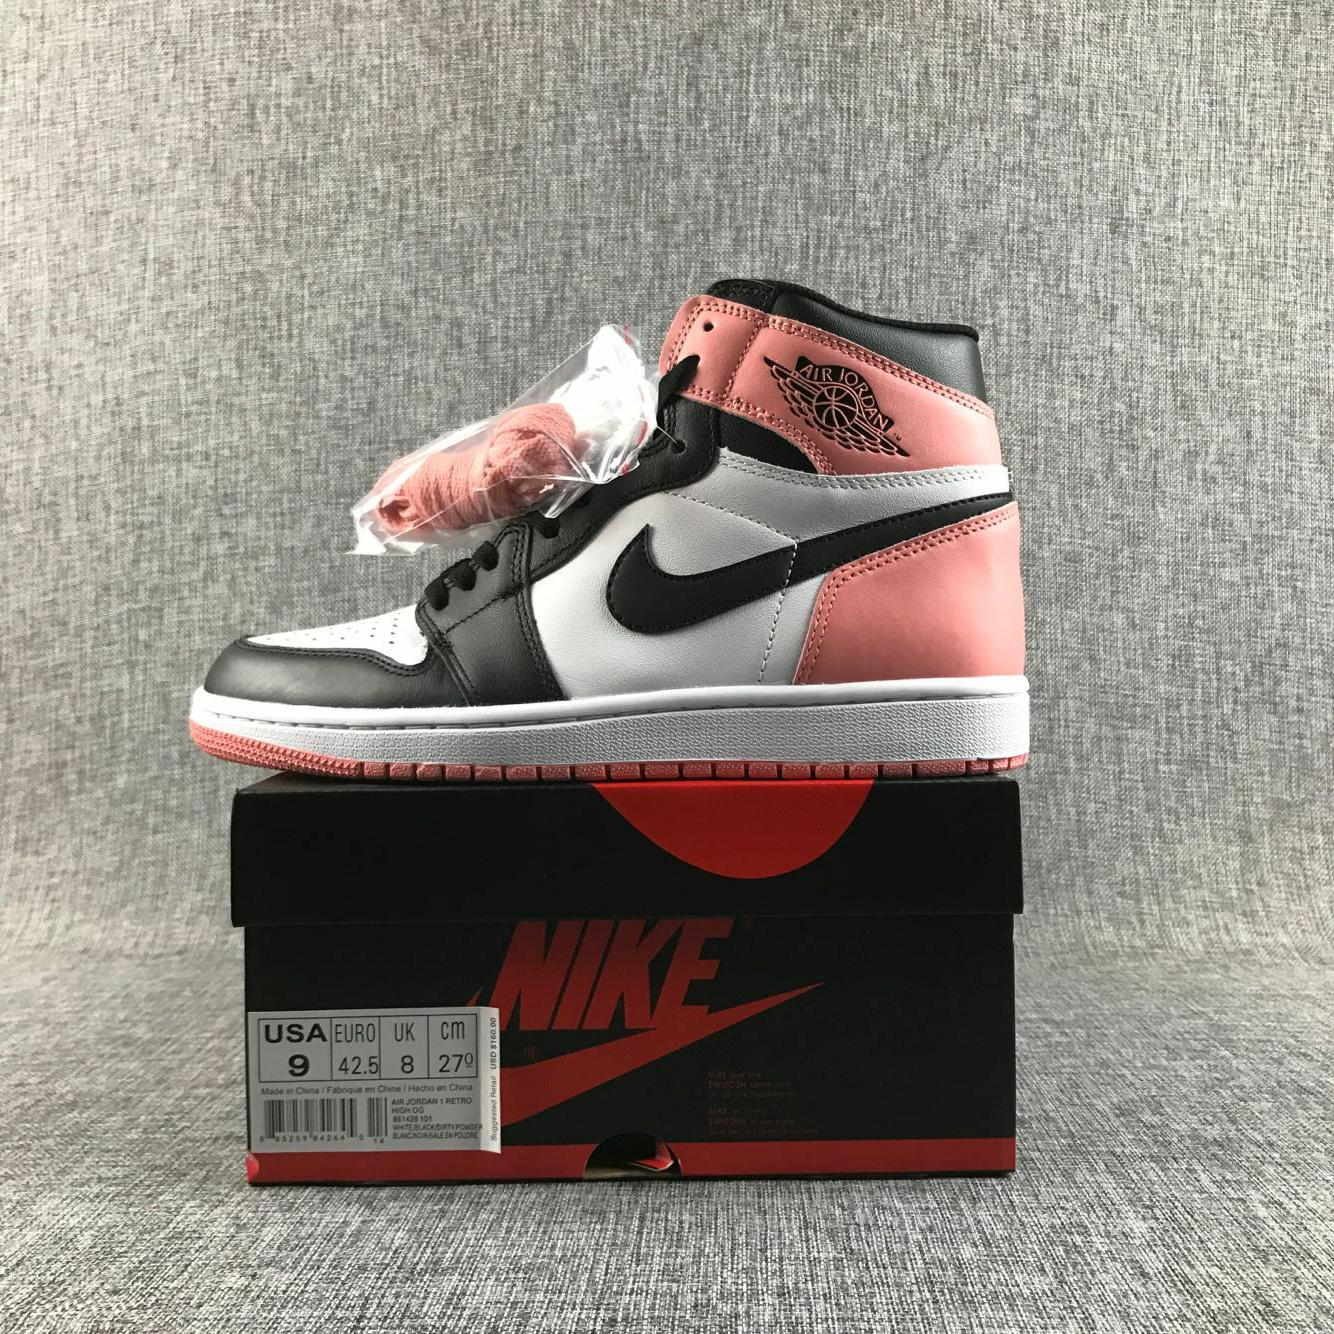 2017 Women Air Jordan 1 Flyknit Black Pink White